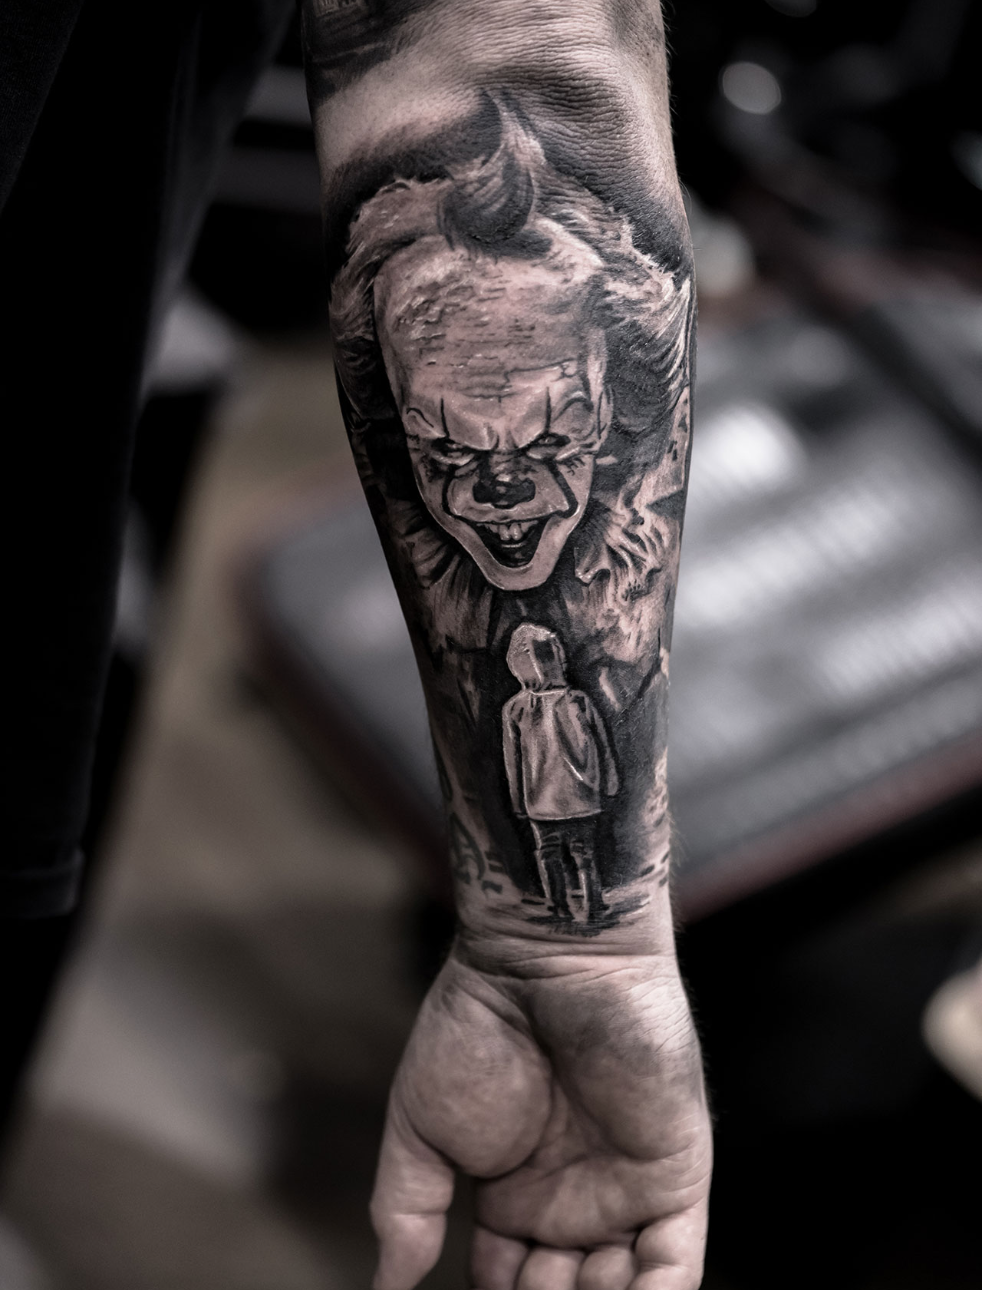 Photorealistic pennywise the clown tattoo by Scoot Ink